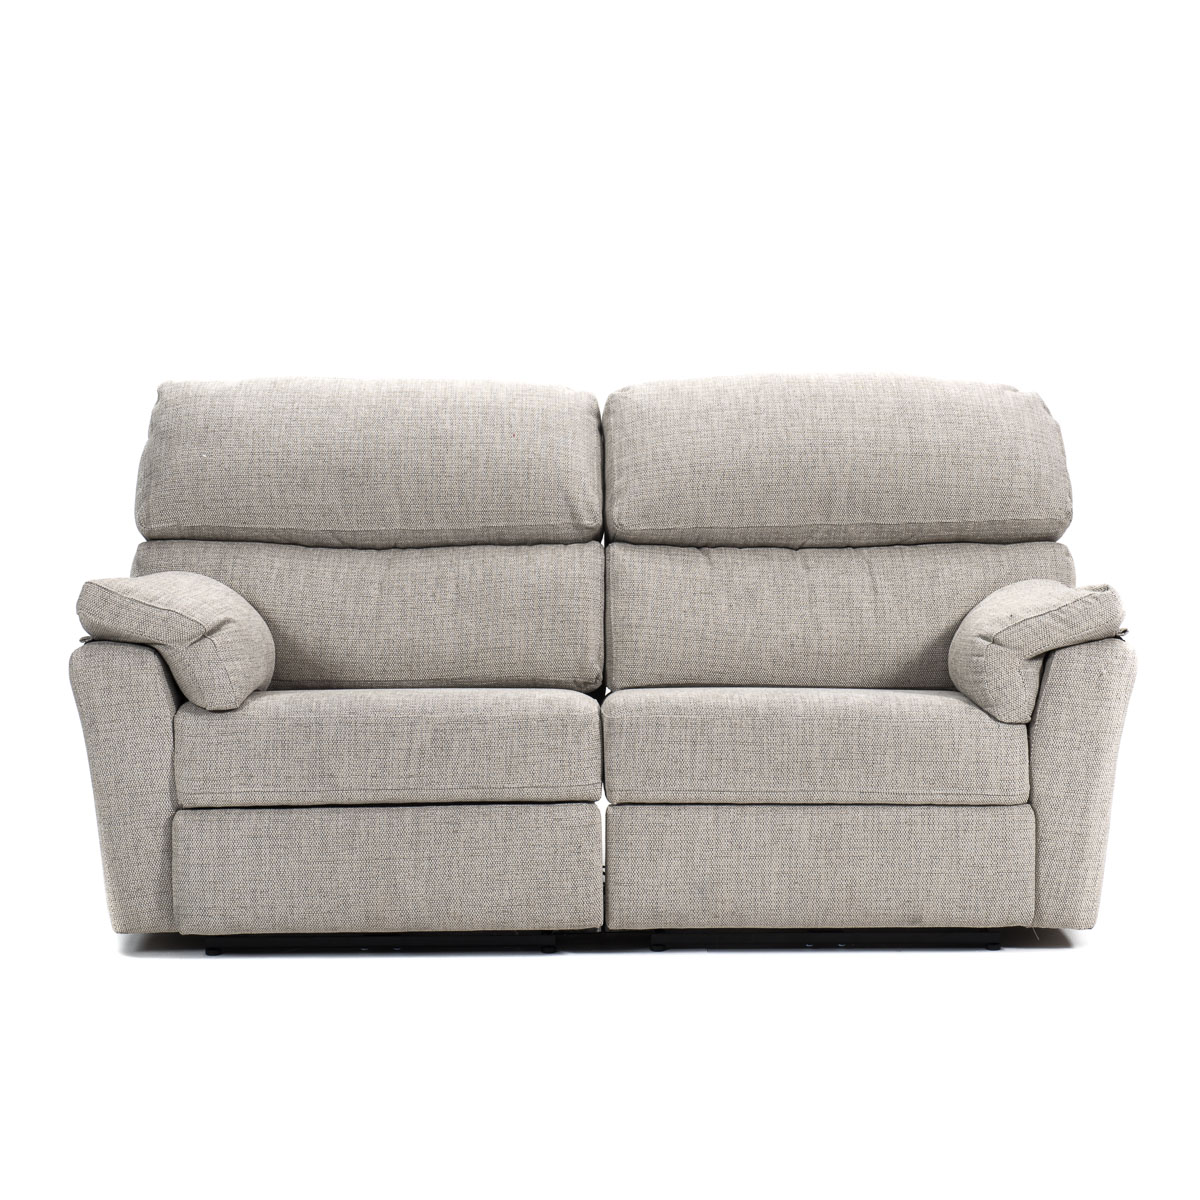 Miranda 3 Seater Electric Recliner Sofa